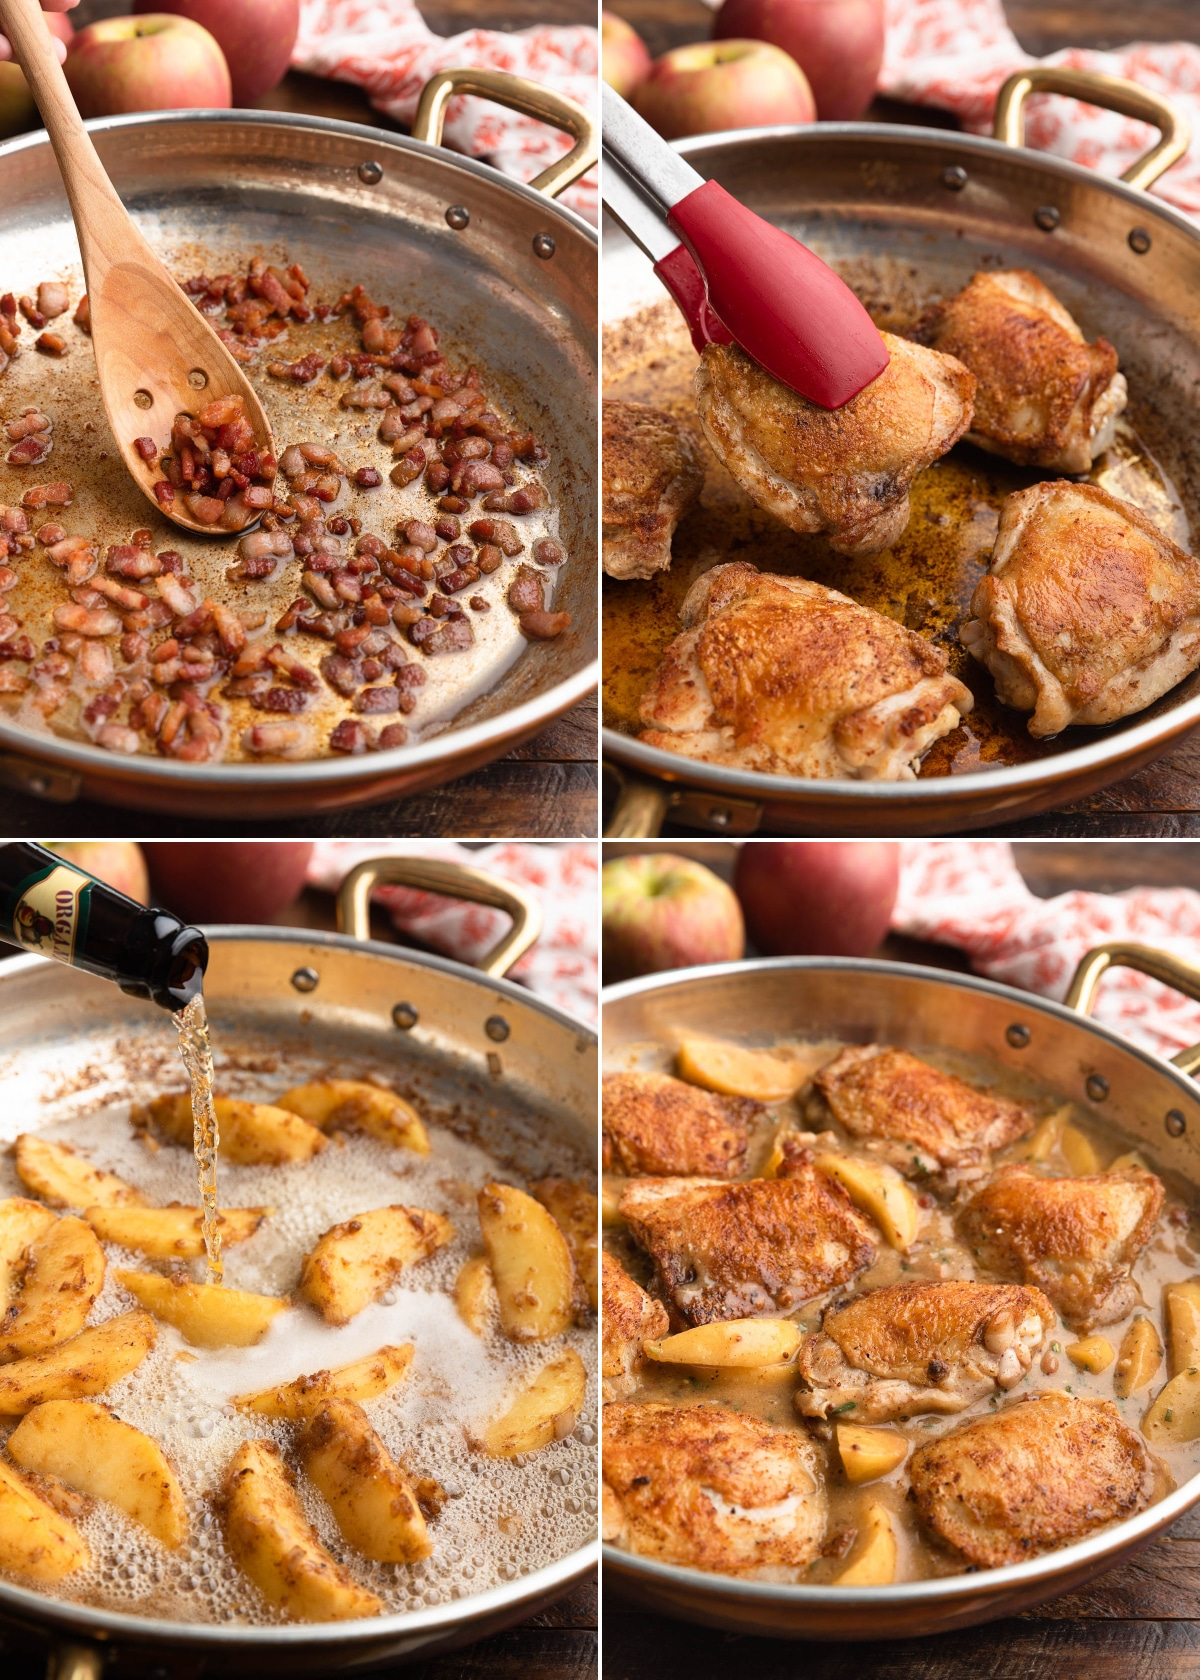 four photos showing the process of making hard cider chicken: crisping bacon, searing chicken thighs, pouring hard cider into the pan, and simmering the chicken and apples in the sauce